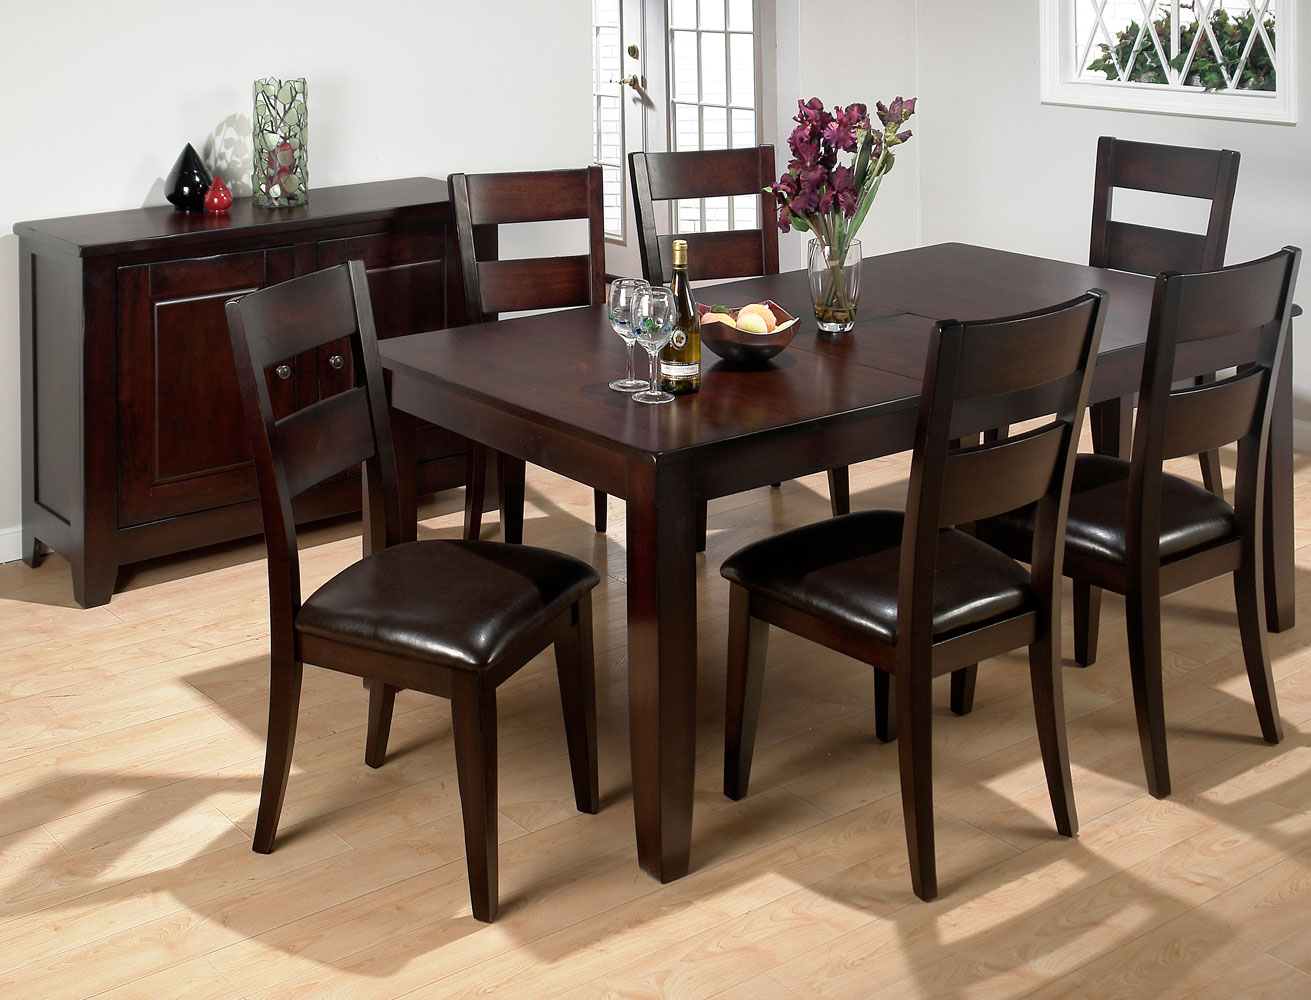 Wooden dining room sets